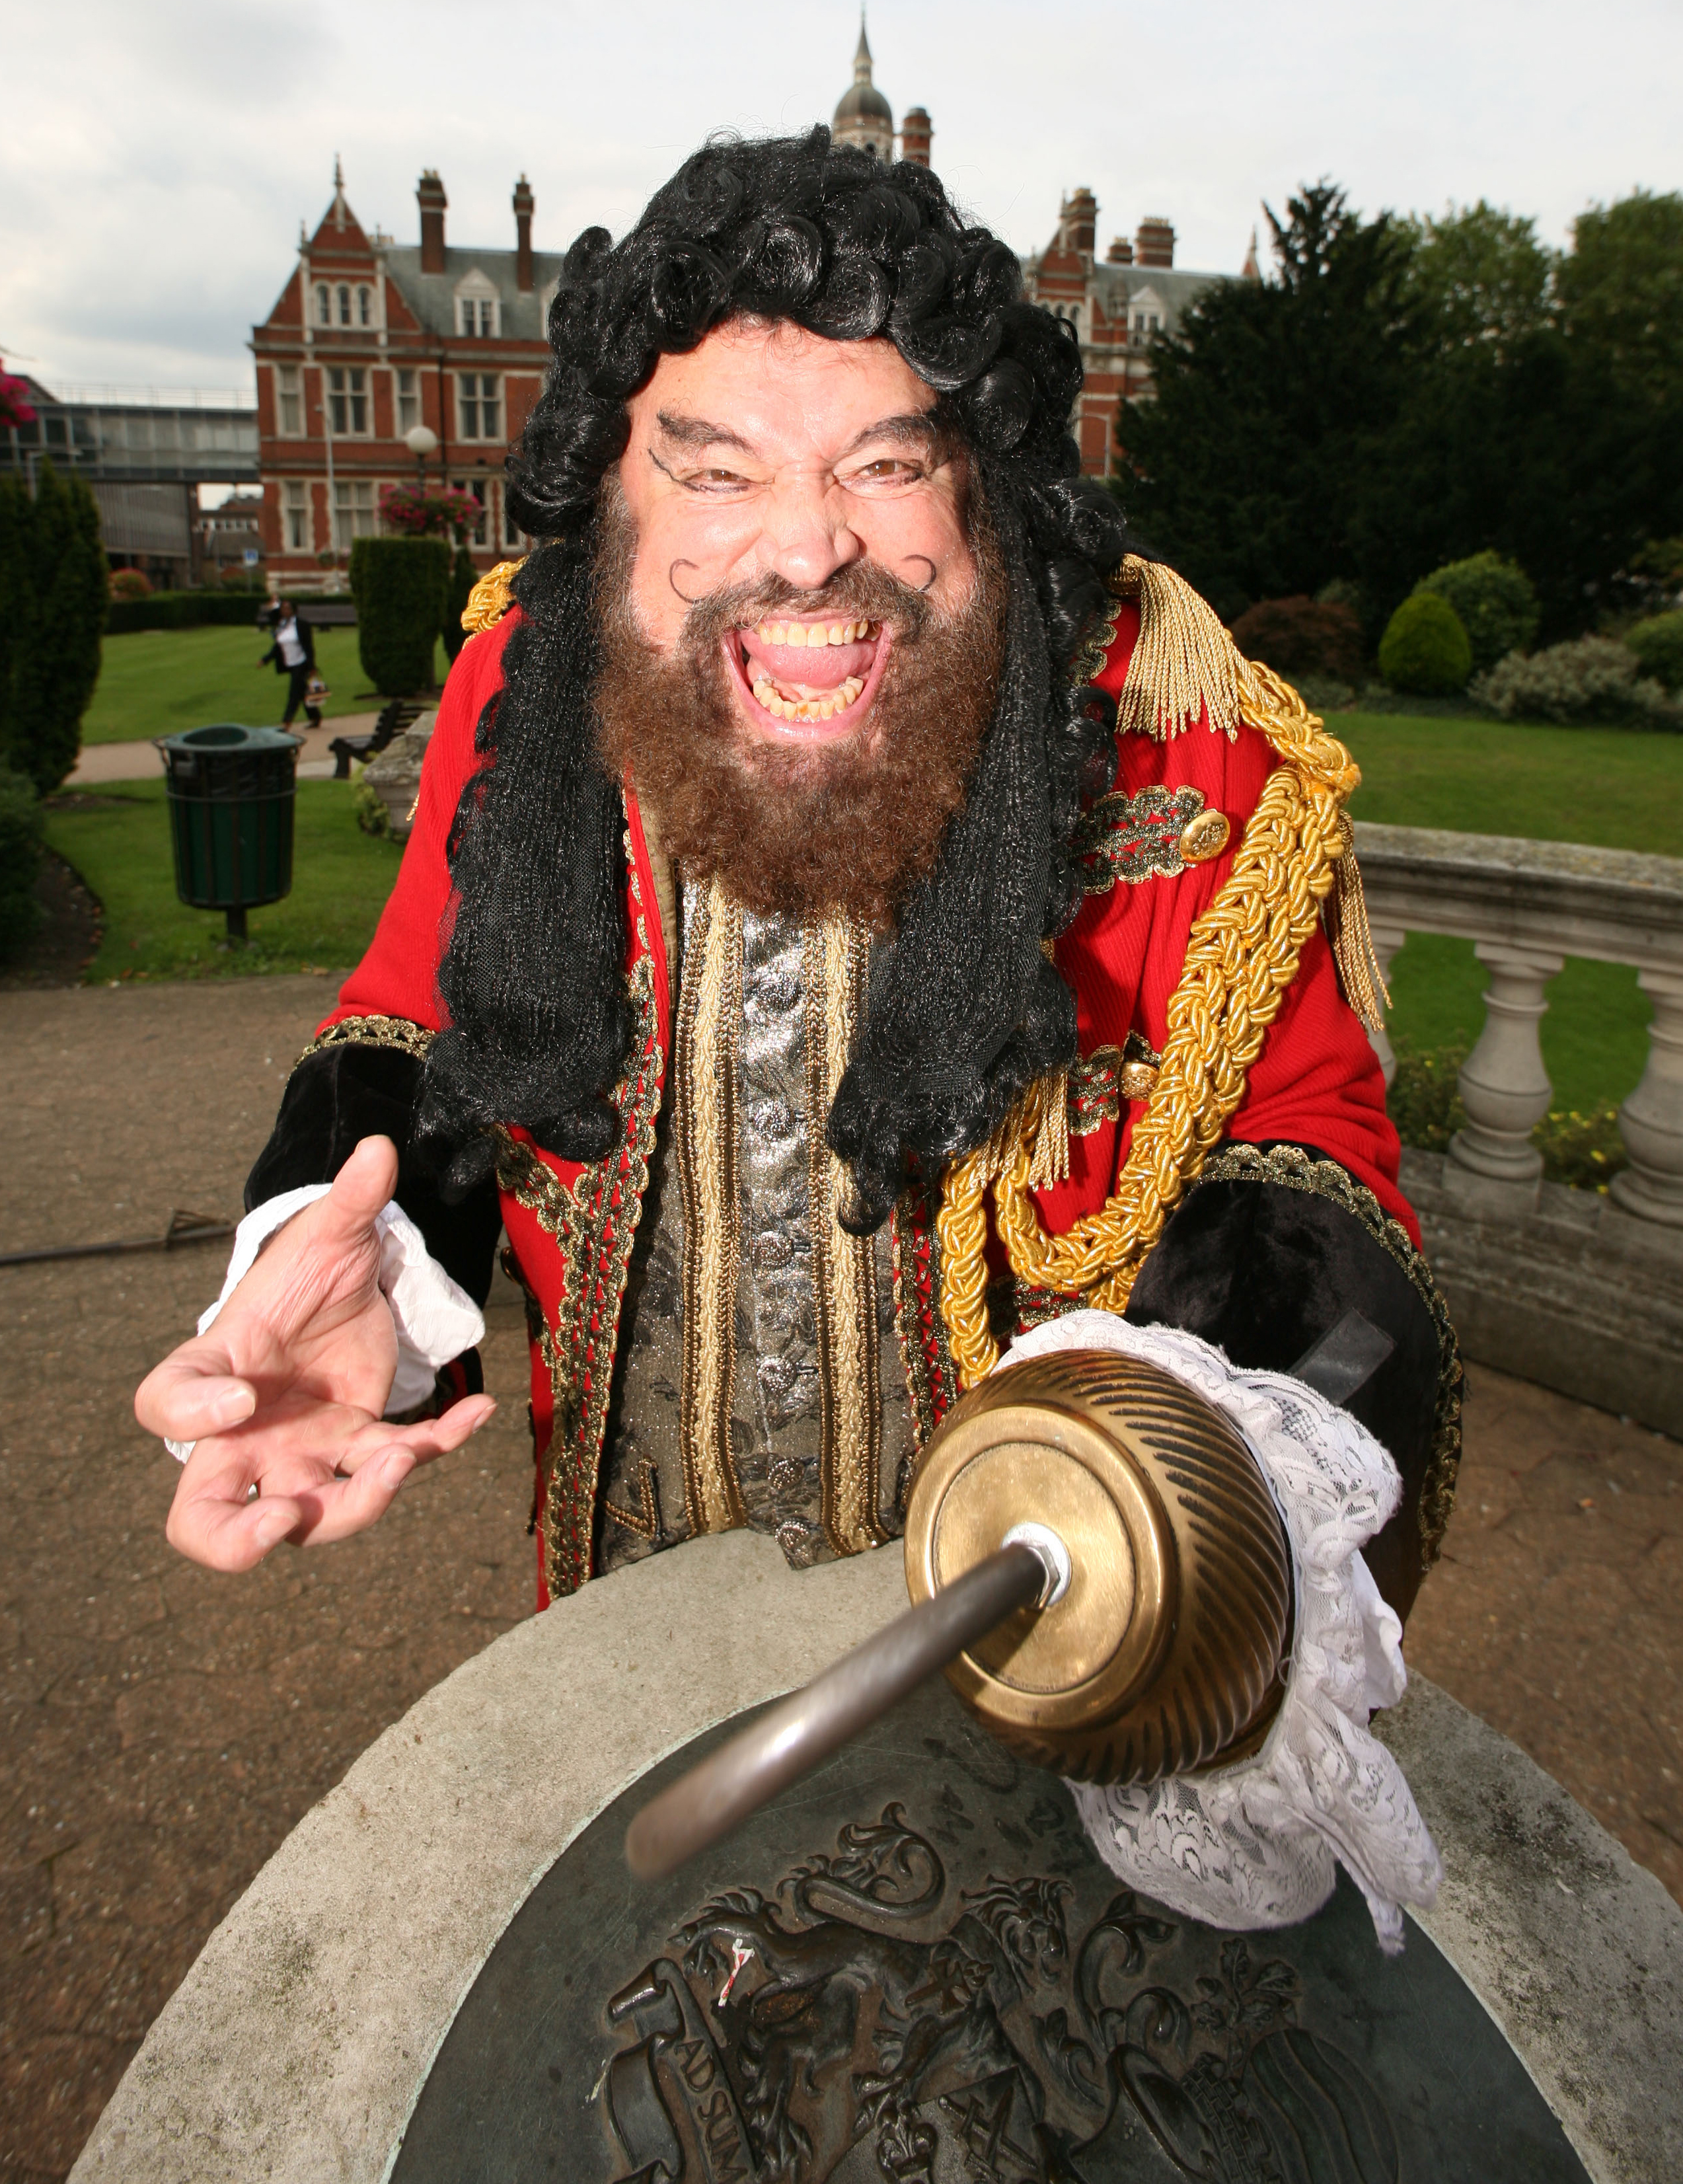 Panto: Brian Blessed stars as Captain Hook at the Fairfield Halls this winter